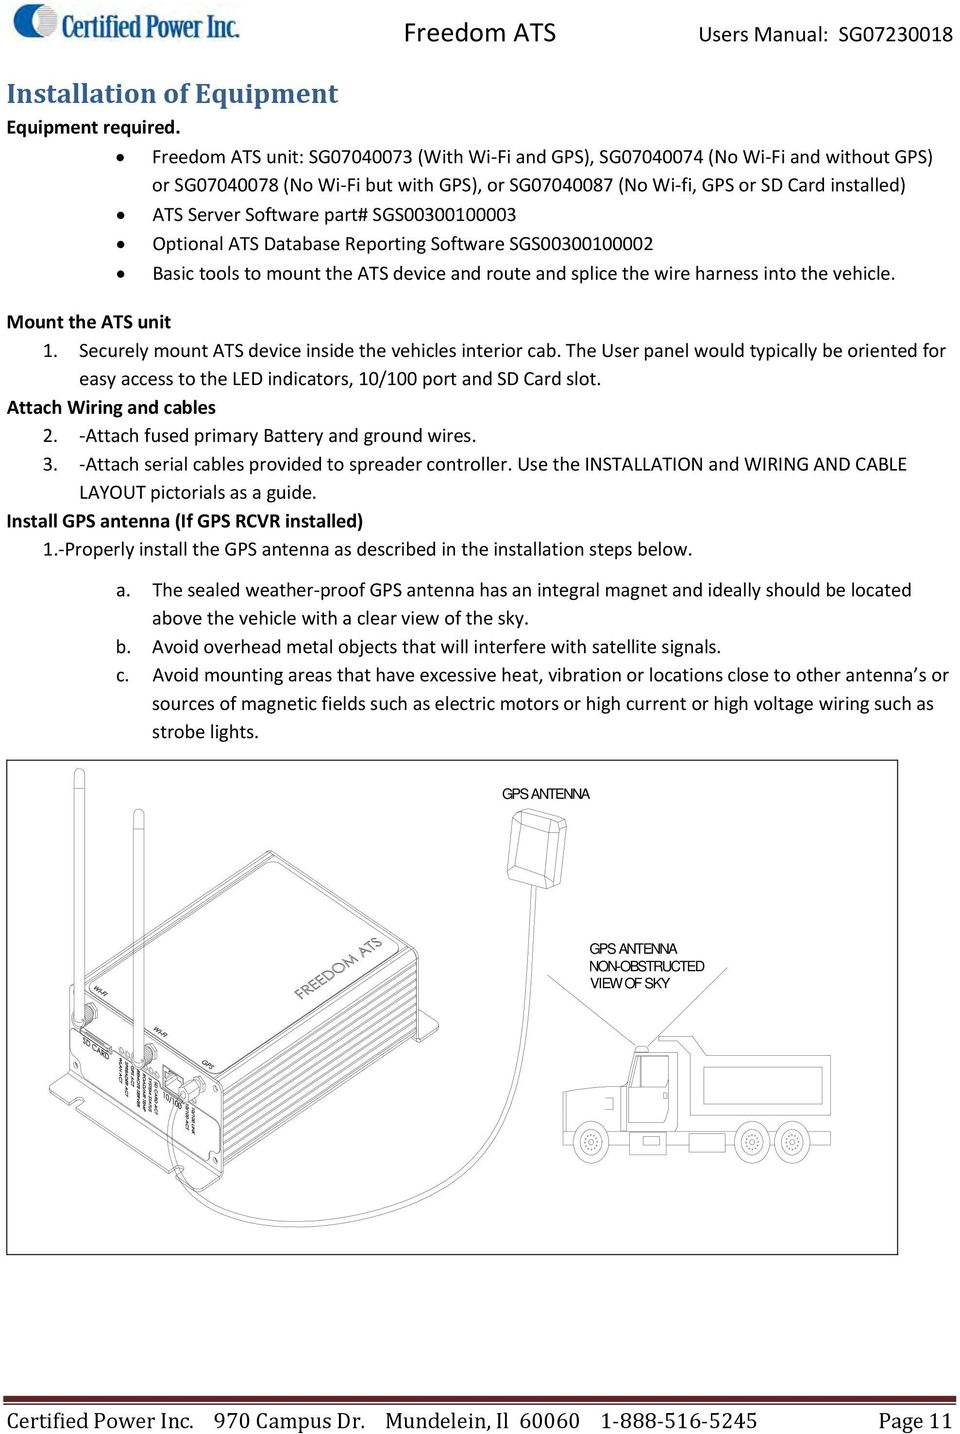 Ats Installation Setup And Maintenance Pdf Wire Harness Magnets Card Installed Server Software Part Sgs00300100003 Optional Database Reporting Sgs00300100002 Basic